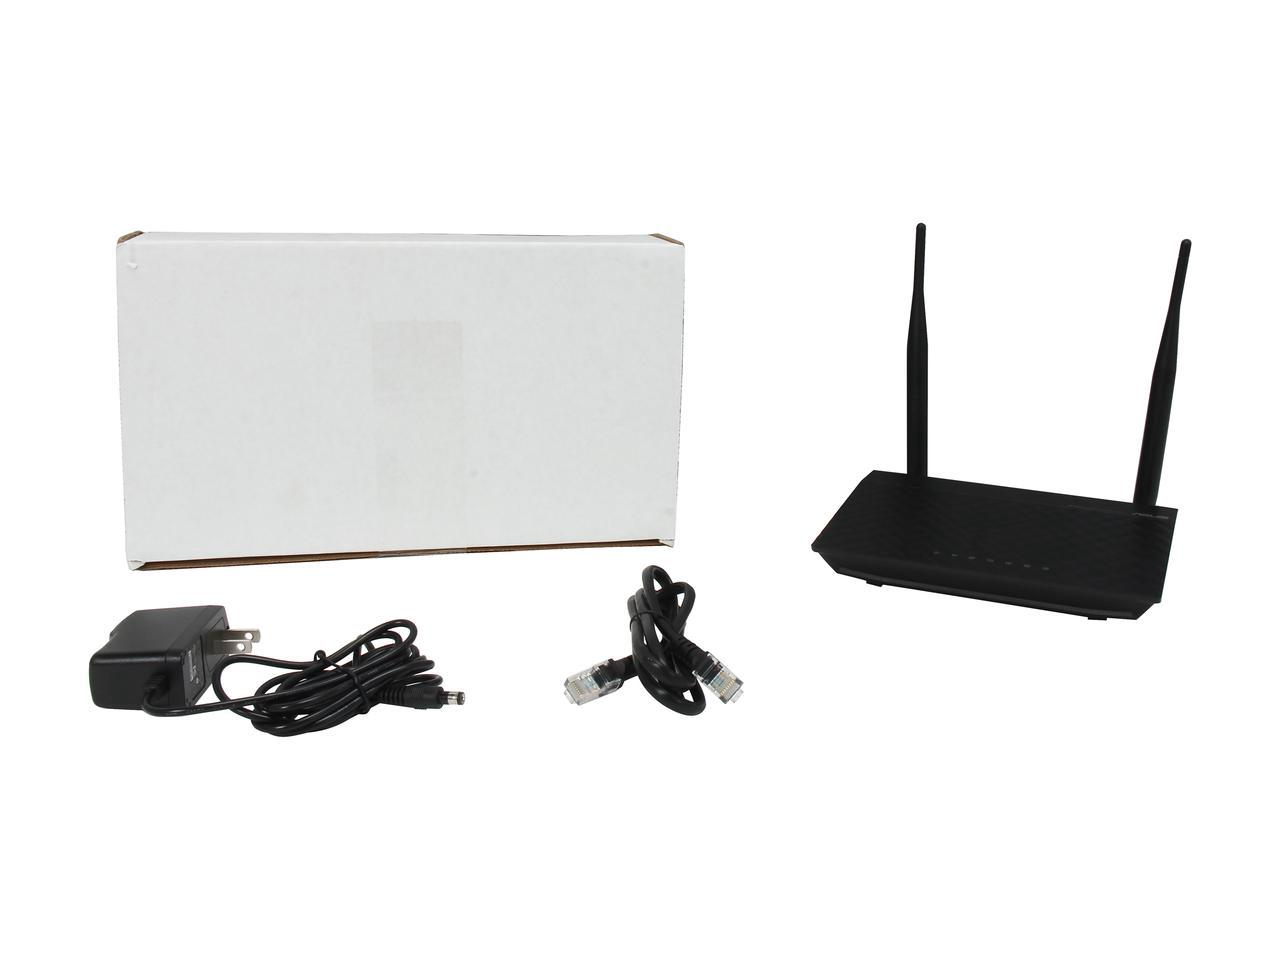 Asus Rt N12 D1 Wireless Router Dd Wrt 2017 Kodi Vpn Tor Tv Box Or N Plus Dual Band 2x2 N300 Wifi 4 Port Gigabit June 2018 Later W Openvpn Pptp Option 2 Omni Directional High Gain 9 Dbi Antenna